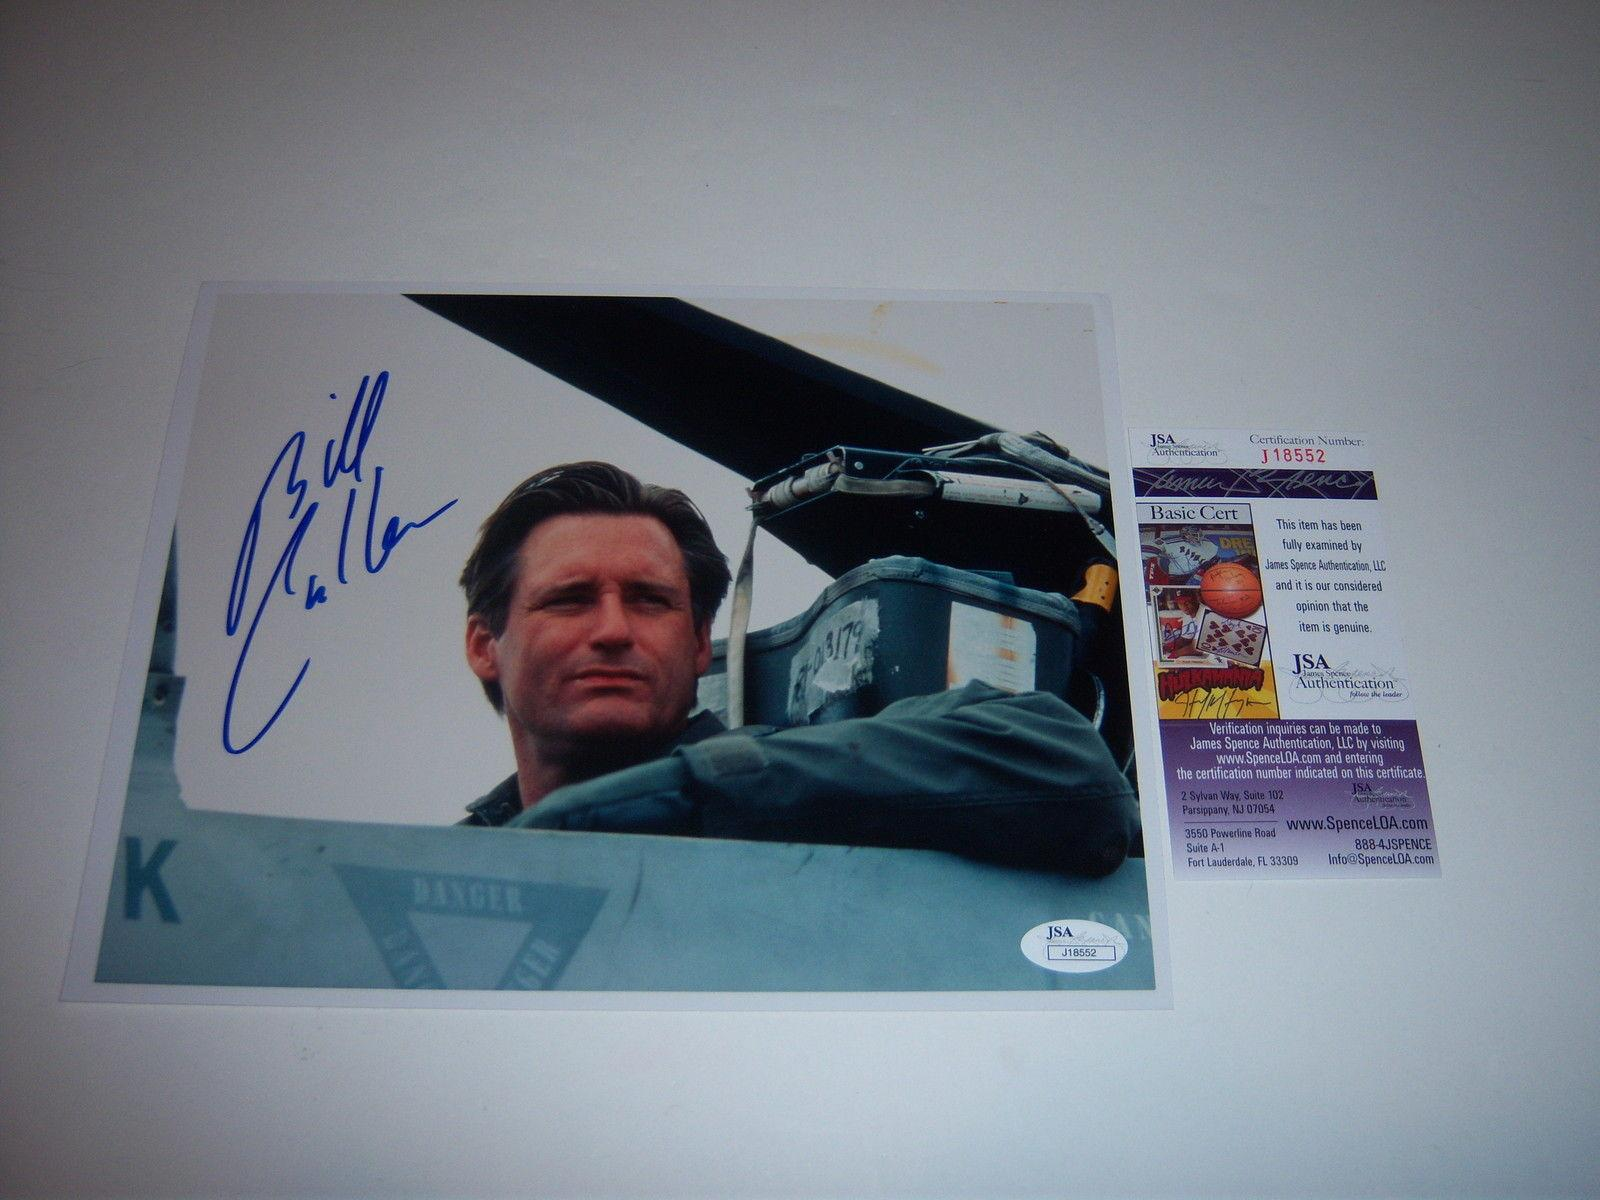 Bill Pullman Independence Day Jsa/coa Signed 8x10 Photo